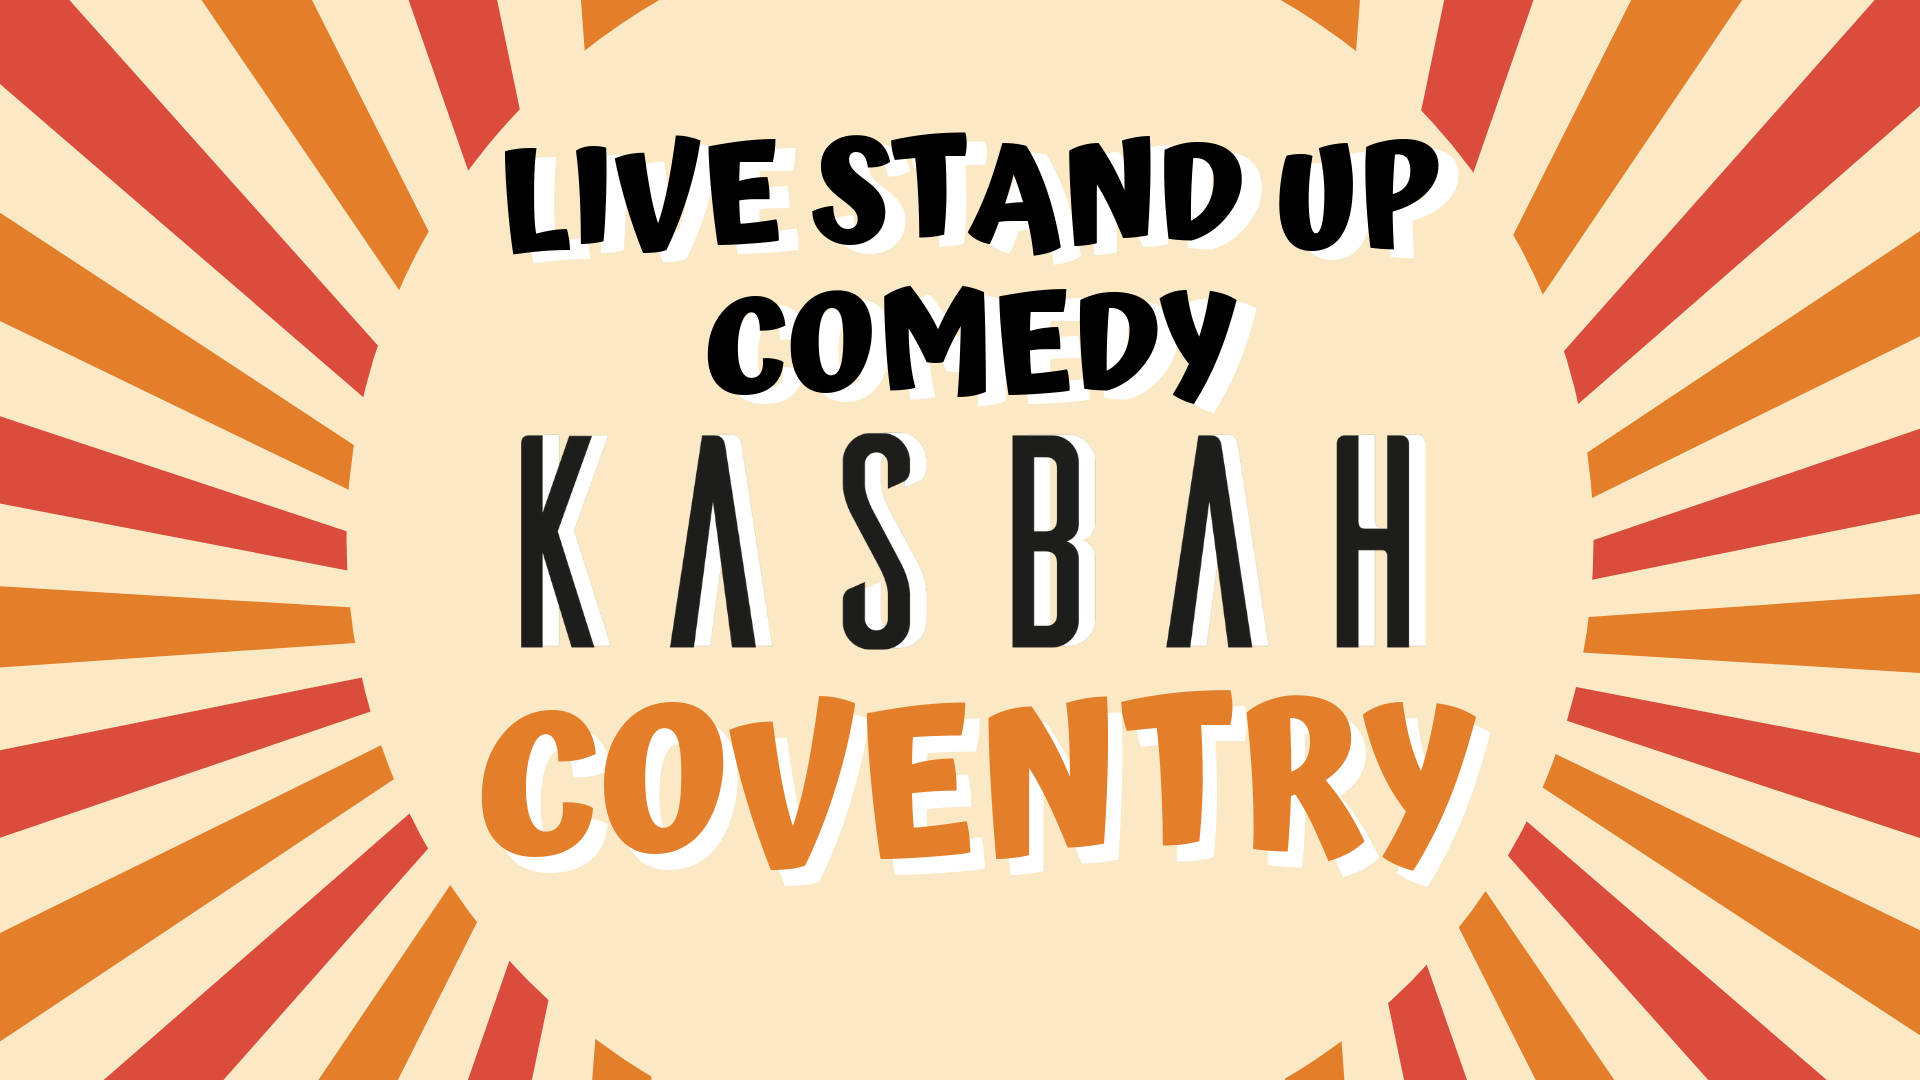 Kasbah comedy coventry